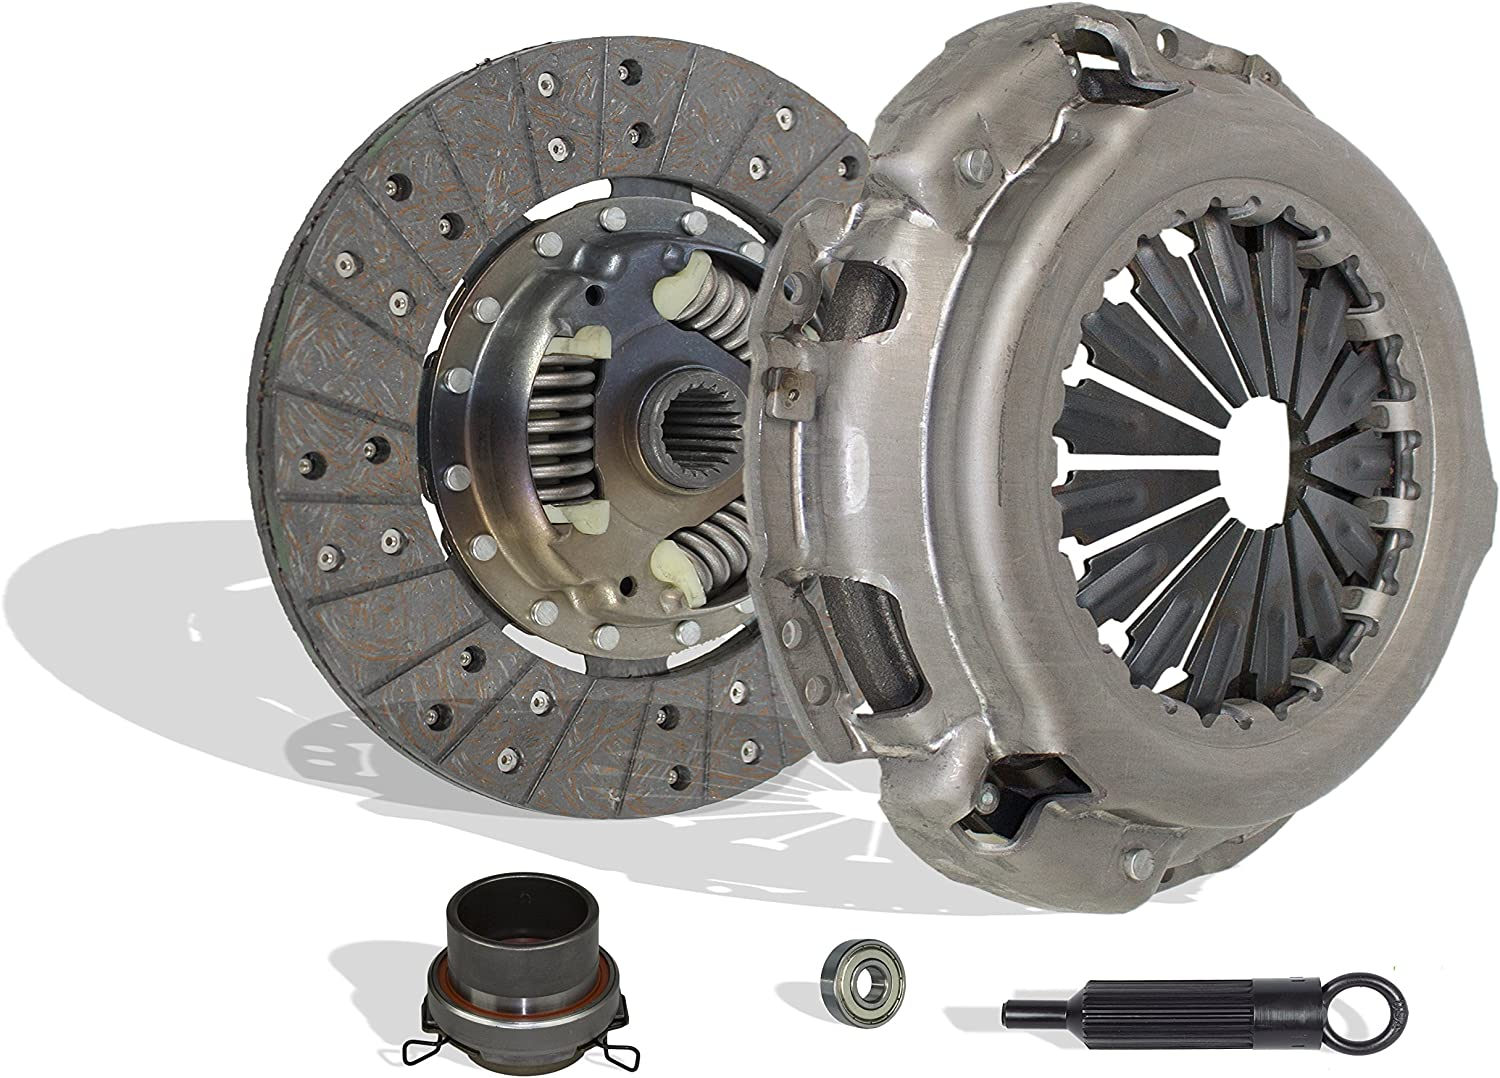 CLUTCH KIT STAGE 3 GEAR MASTERS FOR TOYOTA TACOMA T100 2.7L L4 3.0L V6 2WD 4WD